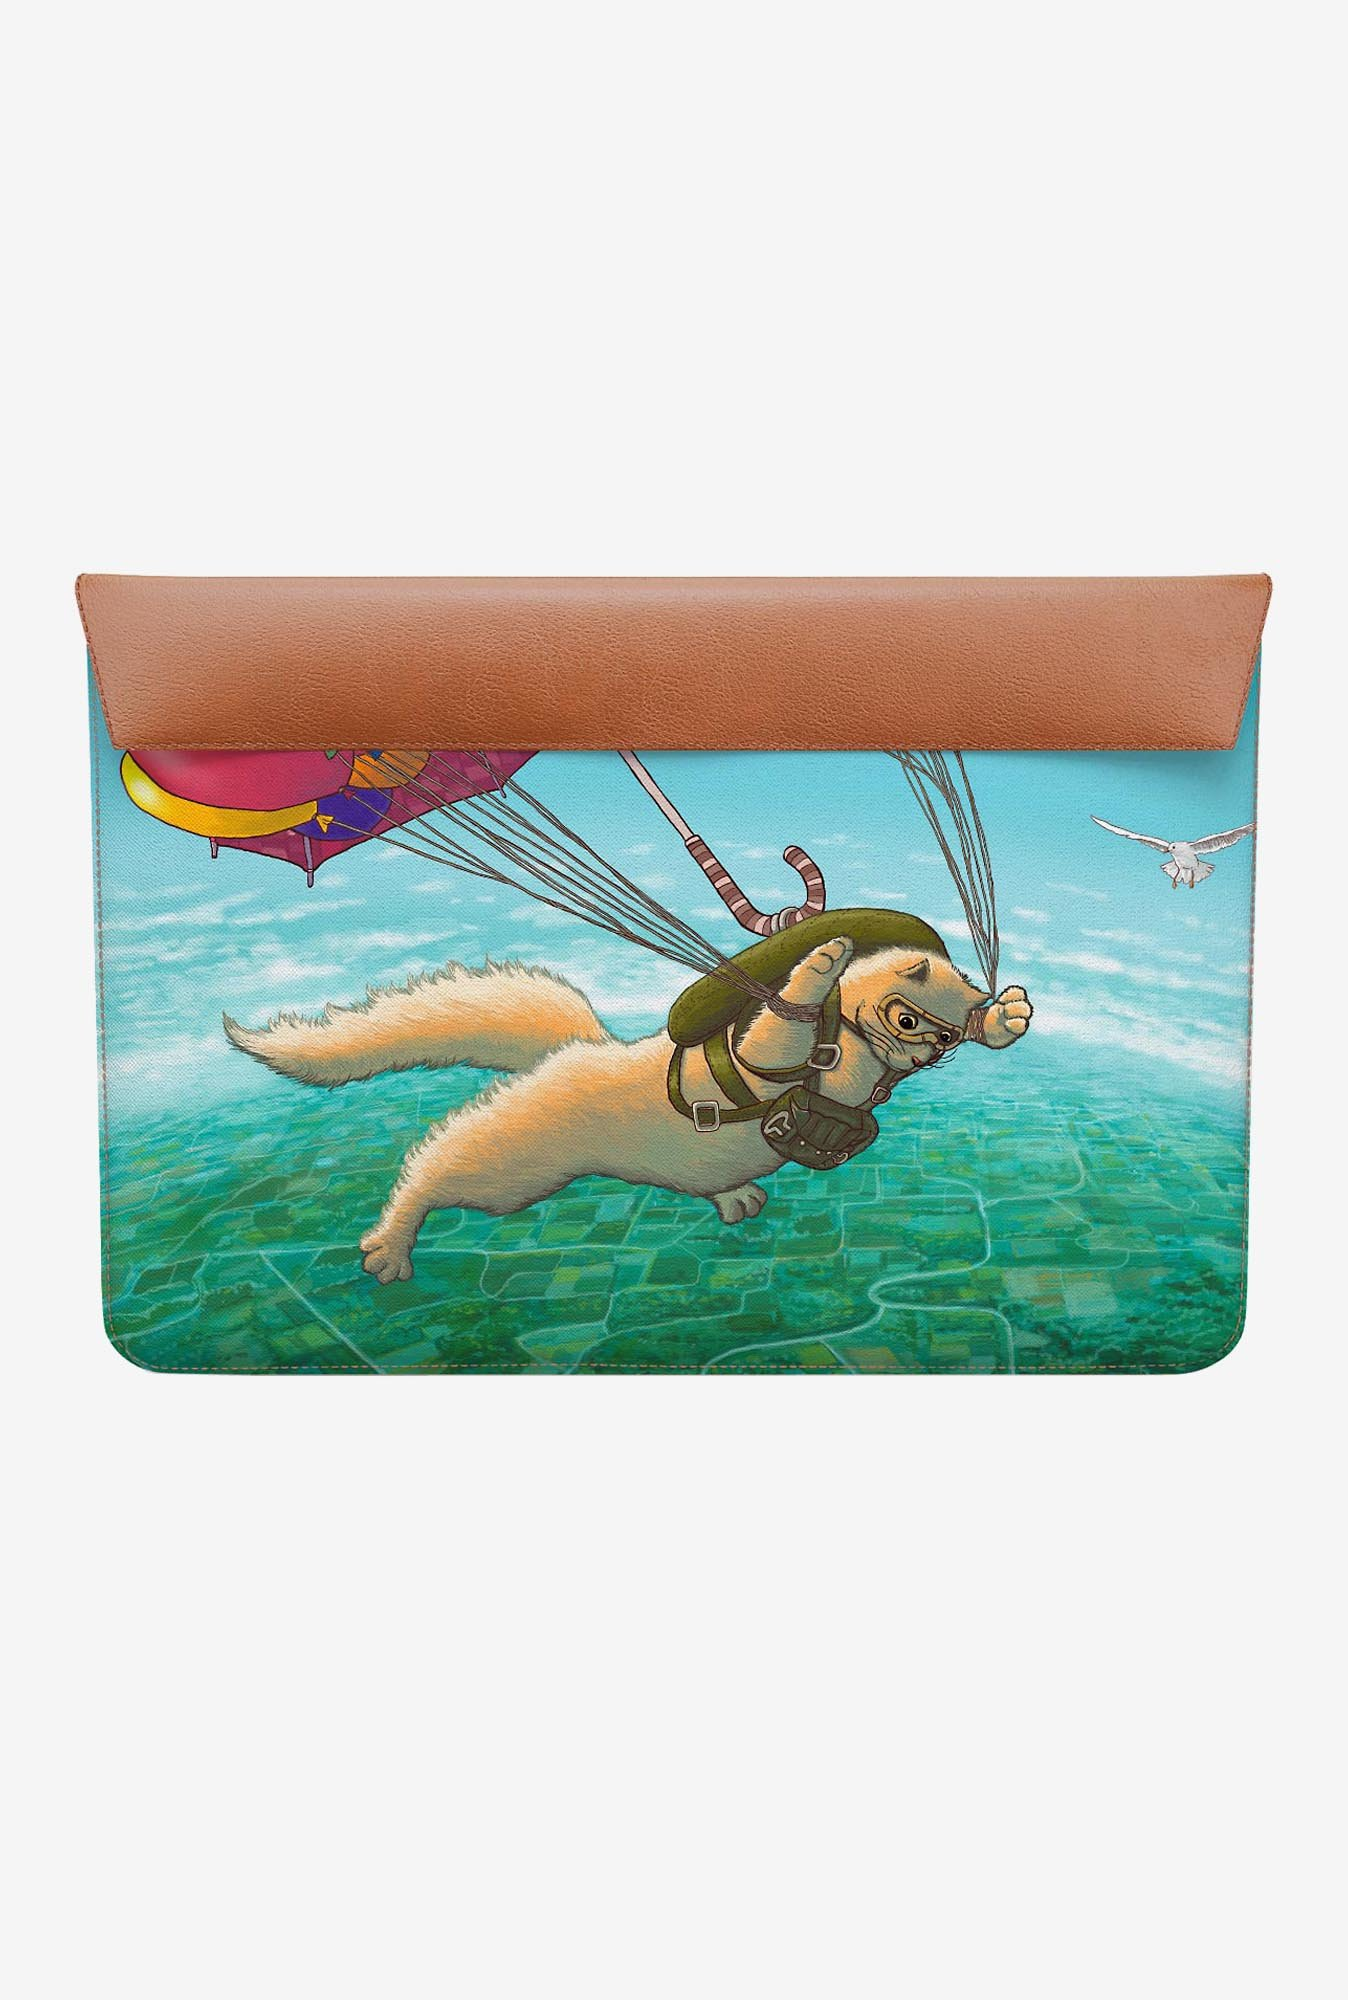 DailyObjects Skydiving Feline MacBook Pro 15 Envelope Sleeve